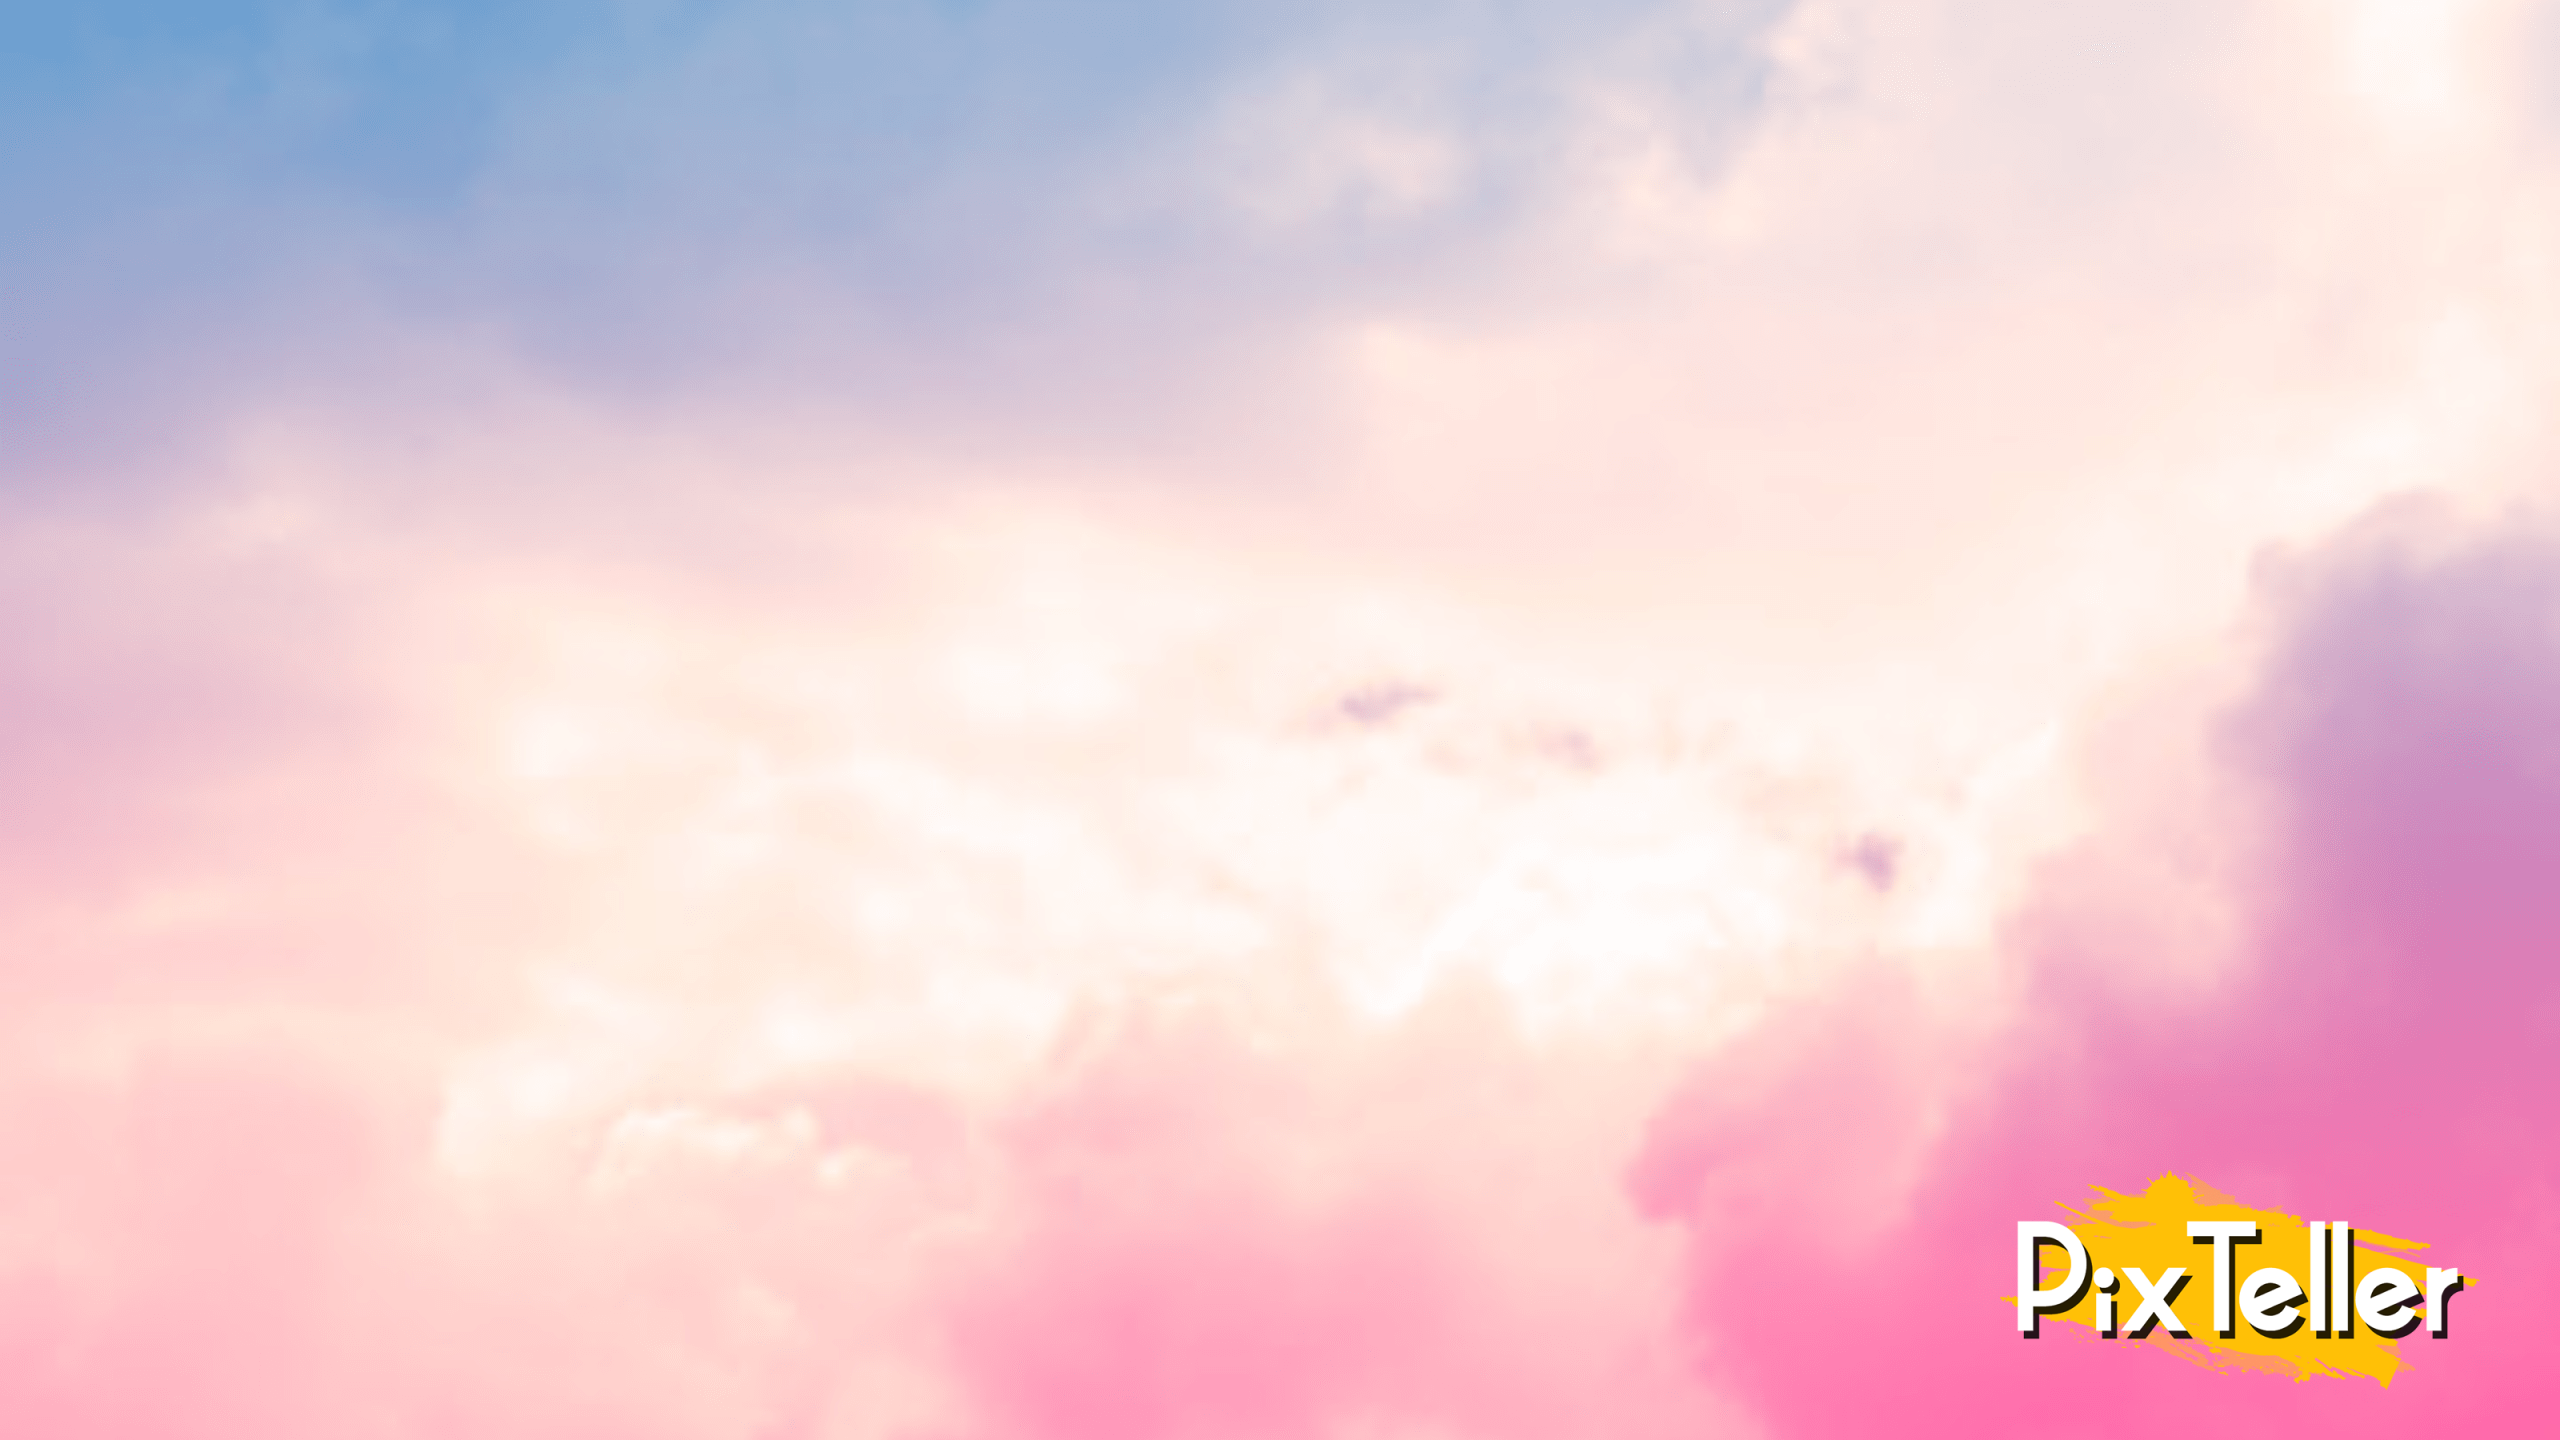 Sky,                Pink,                Cloud,                Atmosphere,                Daytime,                Of,                Earth,                Red,                At,                Morning,                Cumulus,                Phenomenon,                Sunlight,                 Free Image